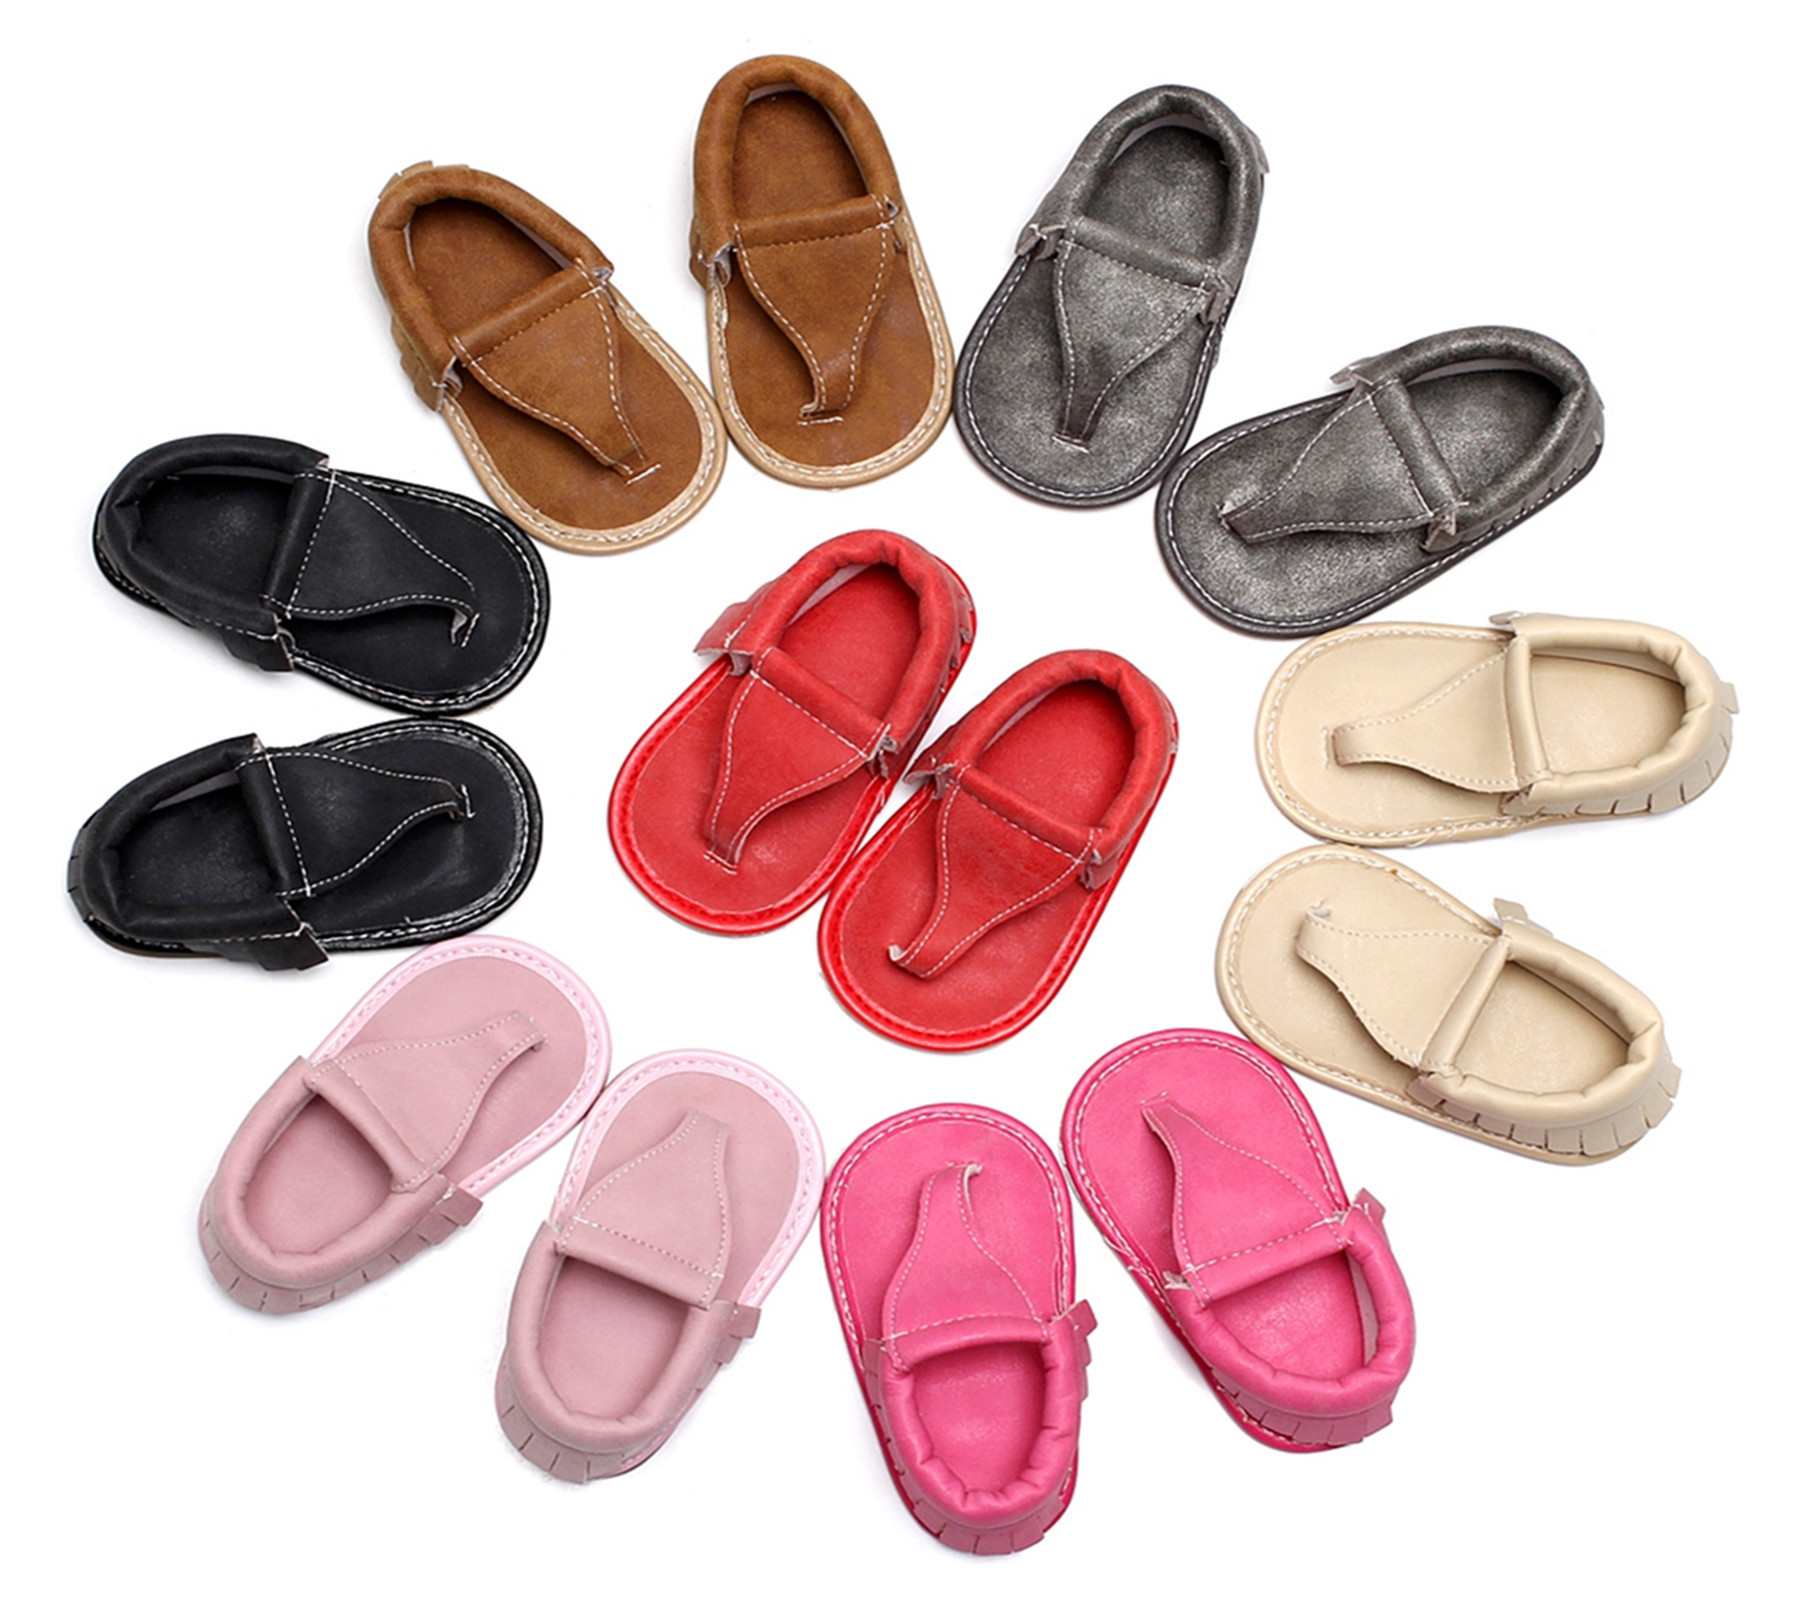 2018 Summer Tassels Baby Moccasins Baby Shoes Girls First Walkers Rubber Soled Non-slip Toddler Shoes Slippers